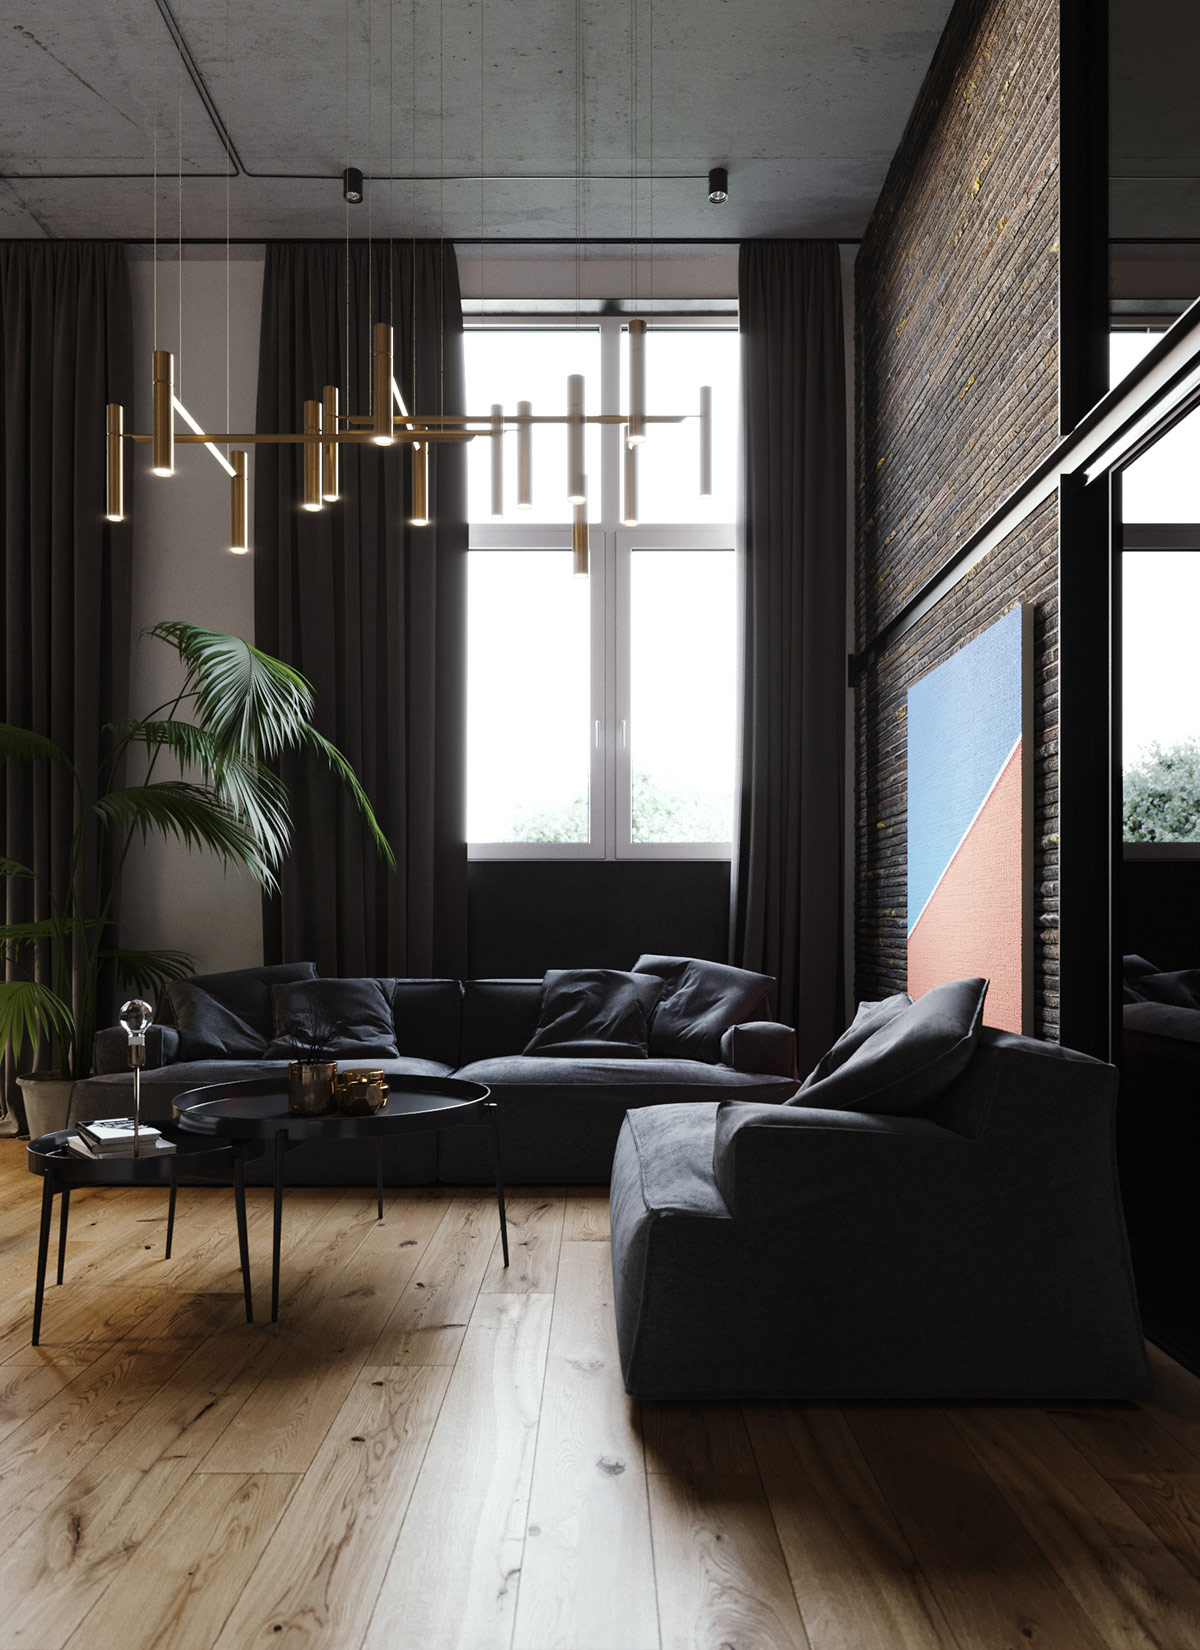 Moody Modern Industrial Interiors With Wood And Concrete Decor